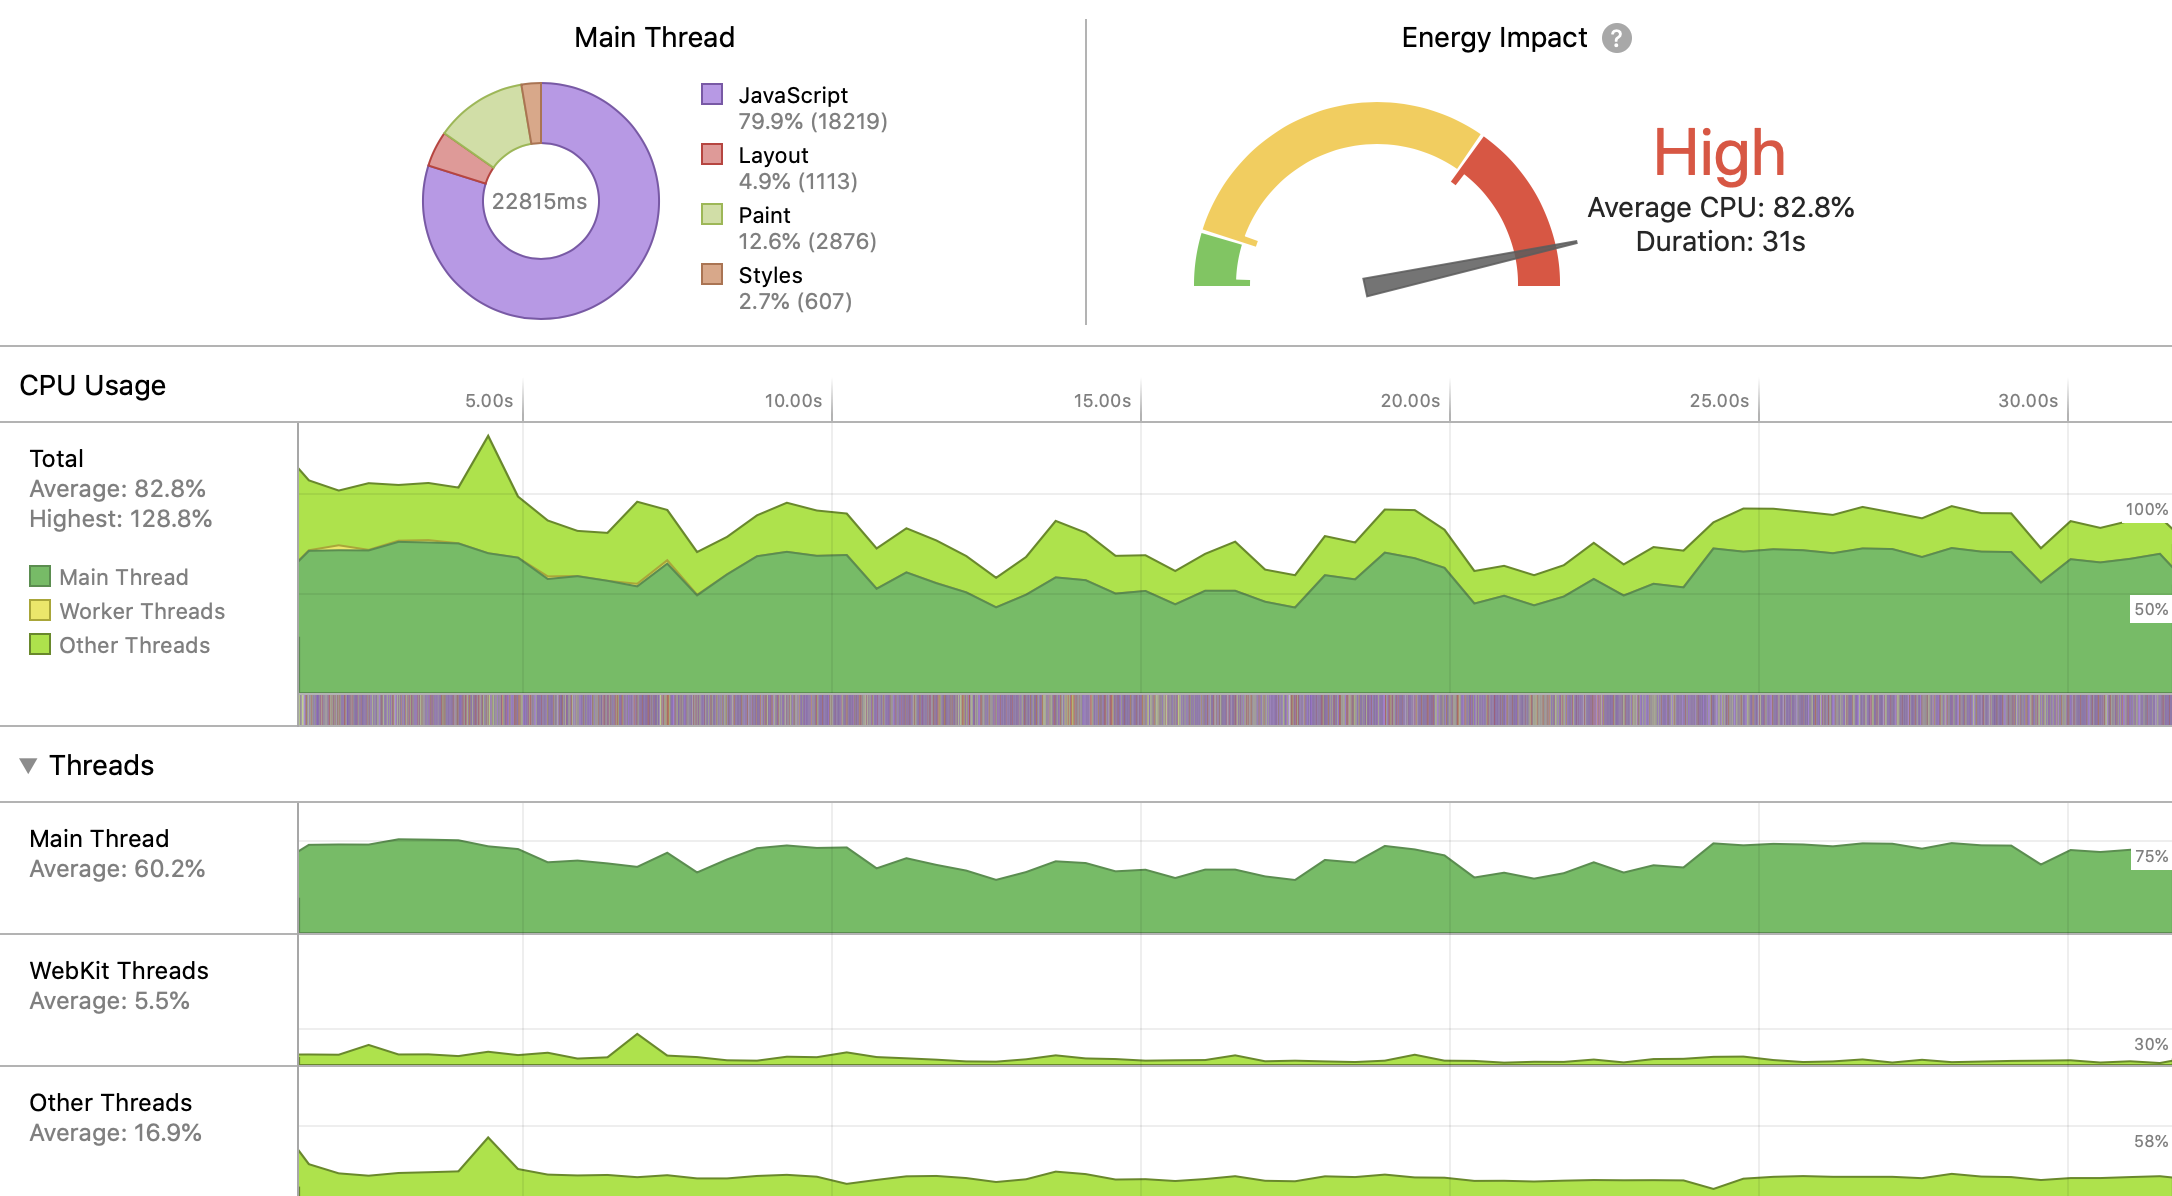 How Web Content Can Affect Power Usage